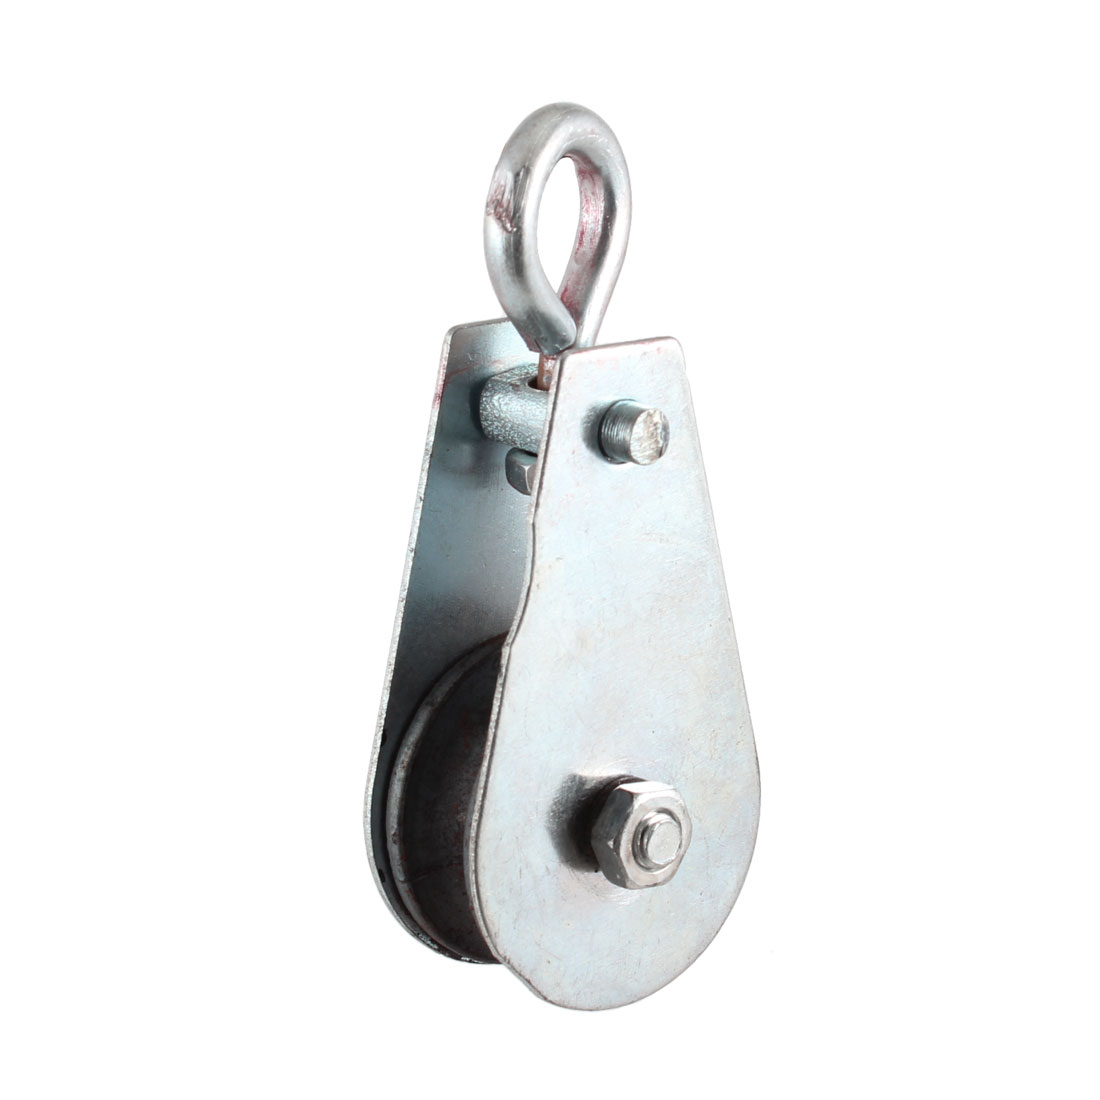 0.05T Cargo Lifting Tackle Single Groove Sheave Pulley Silver Tone